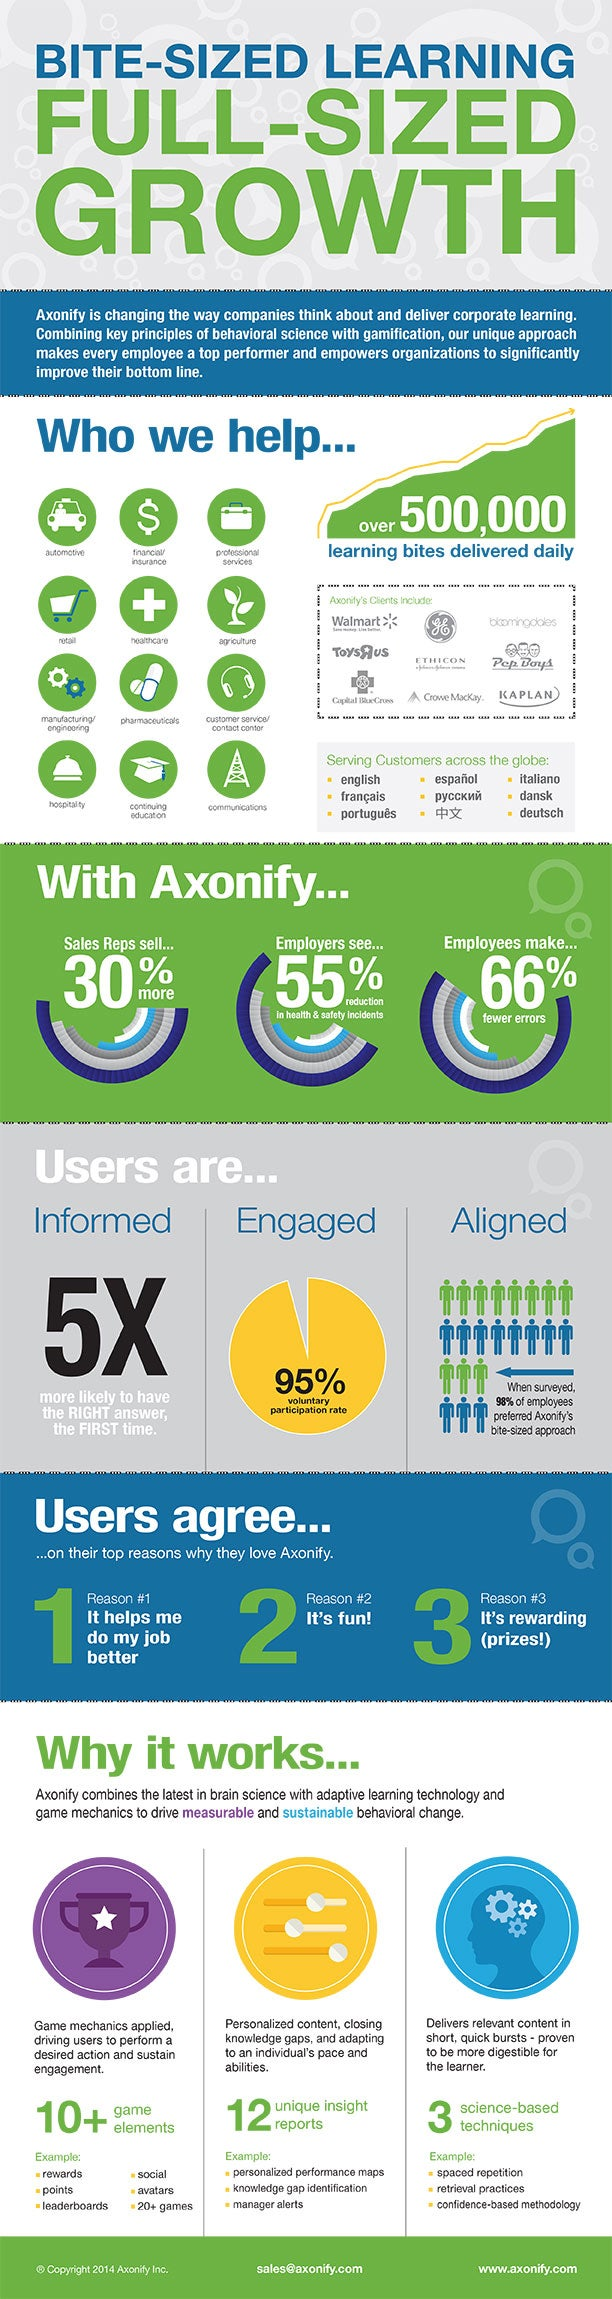 axonify-infographic-bite-sized-learning-2014